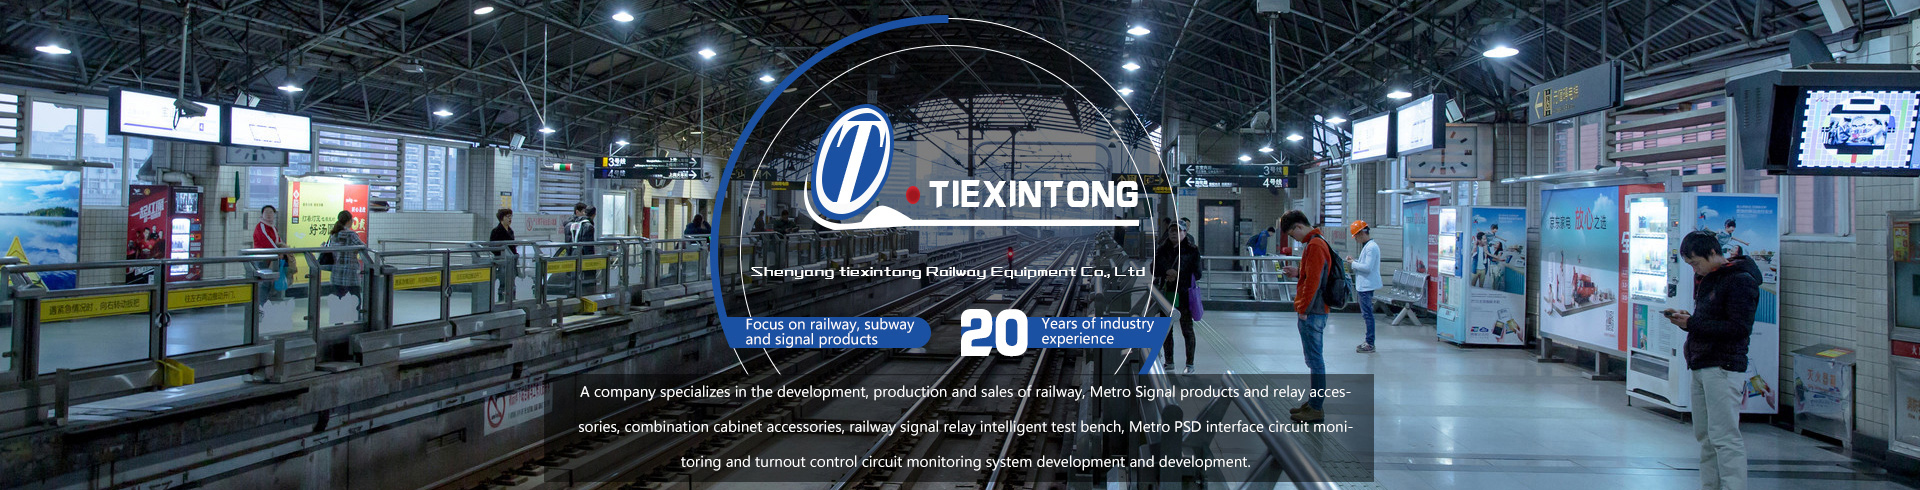 Shenyang tiexintong Railway Equipment Co., Ltd